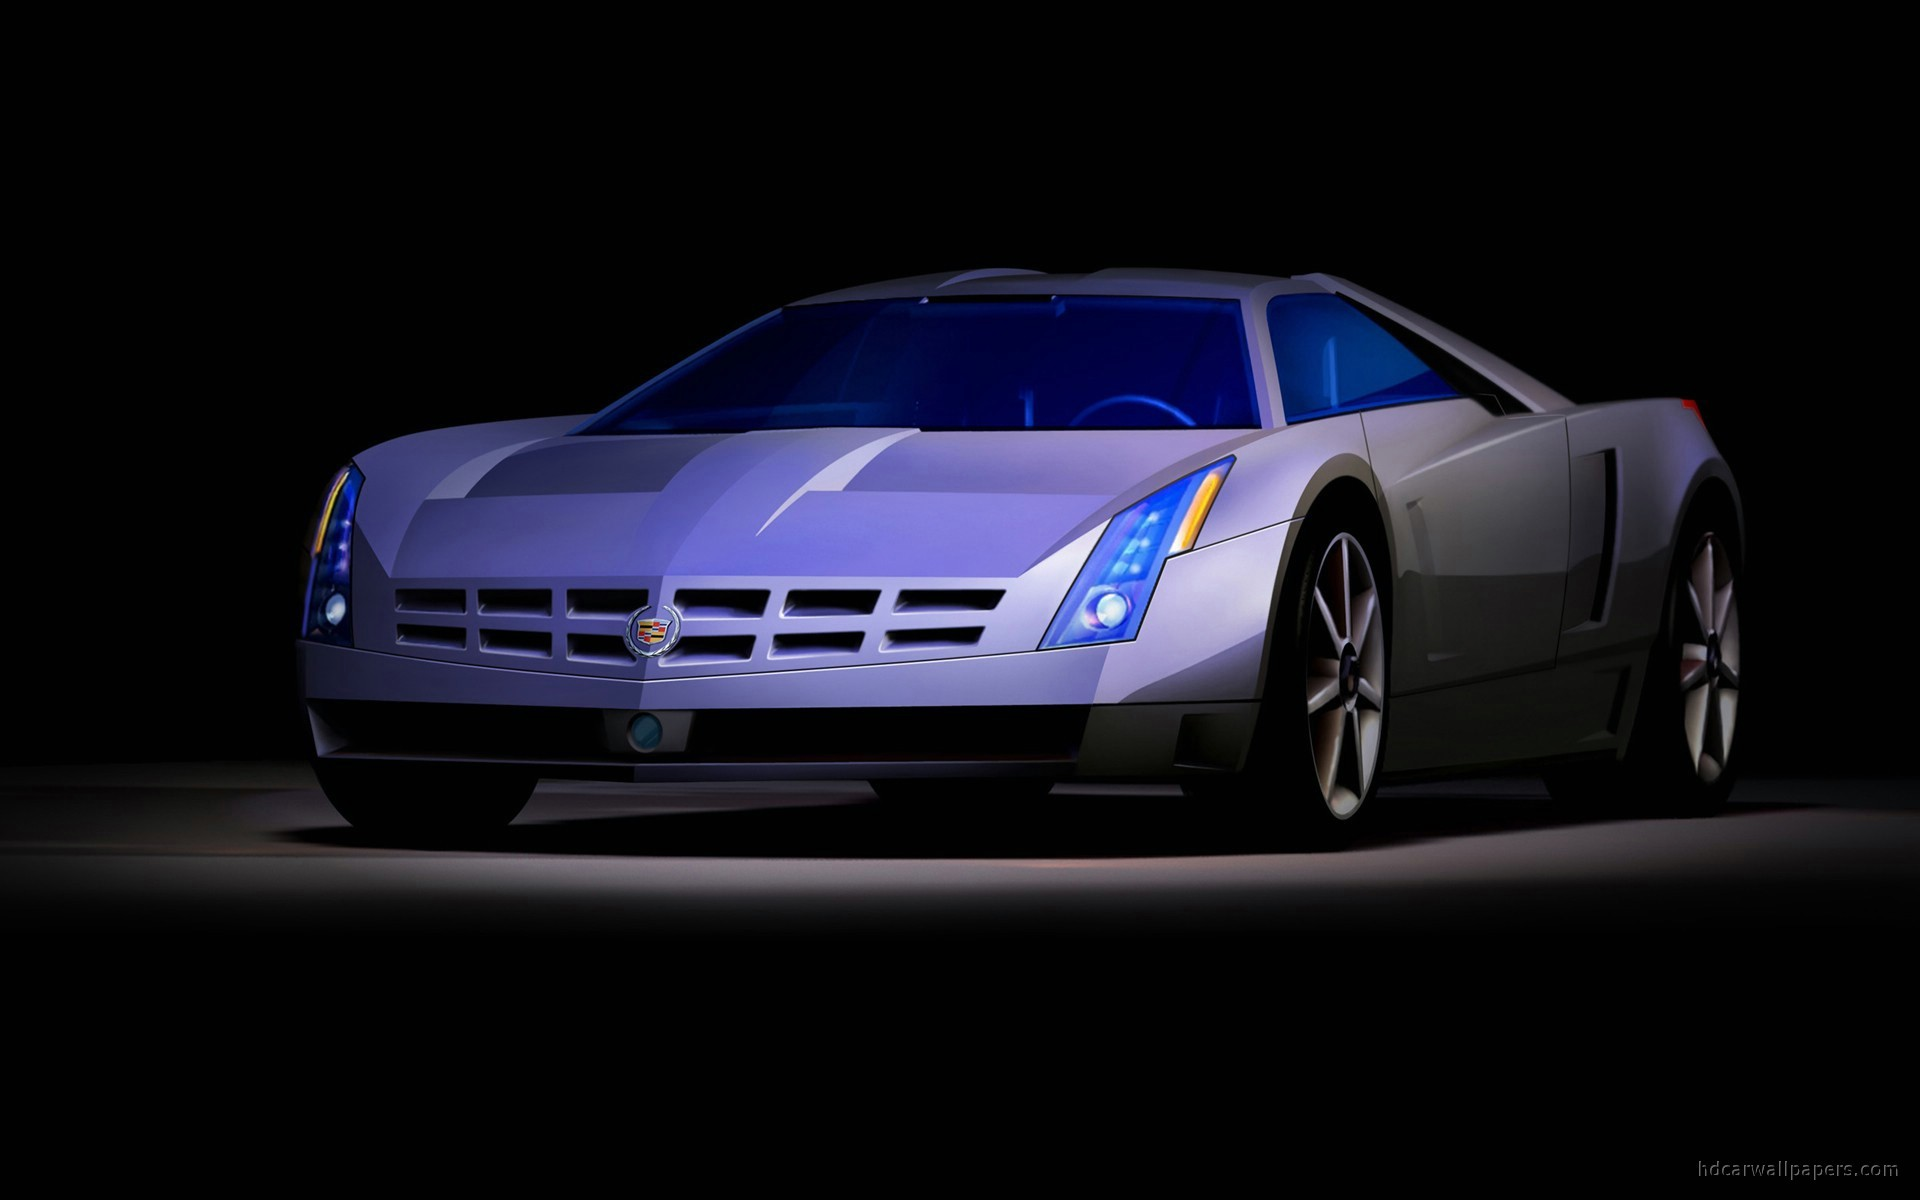 cadillac hd wallpapers new tab theme - top speed motors